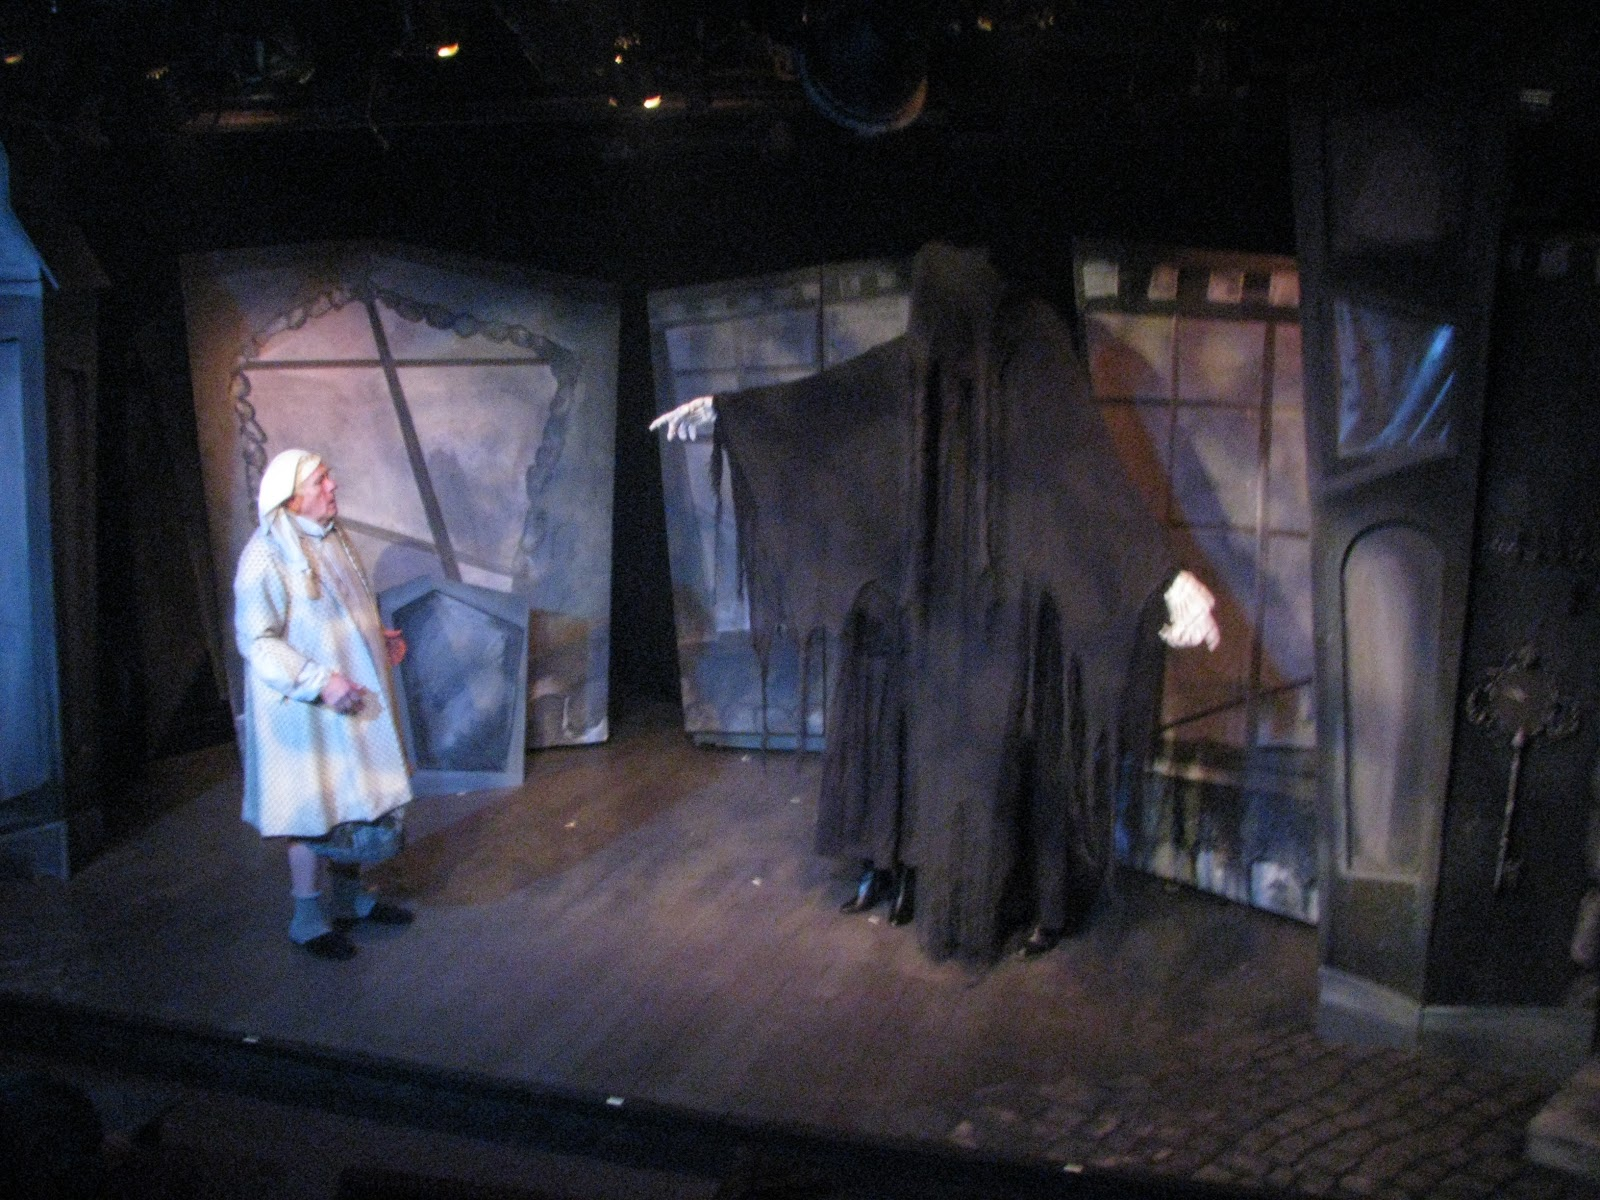 The Ghost Of Christmas Future.Backstage Theatre Blog Scrooge And The Ghost Of Christmas